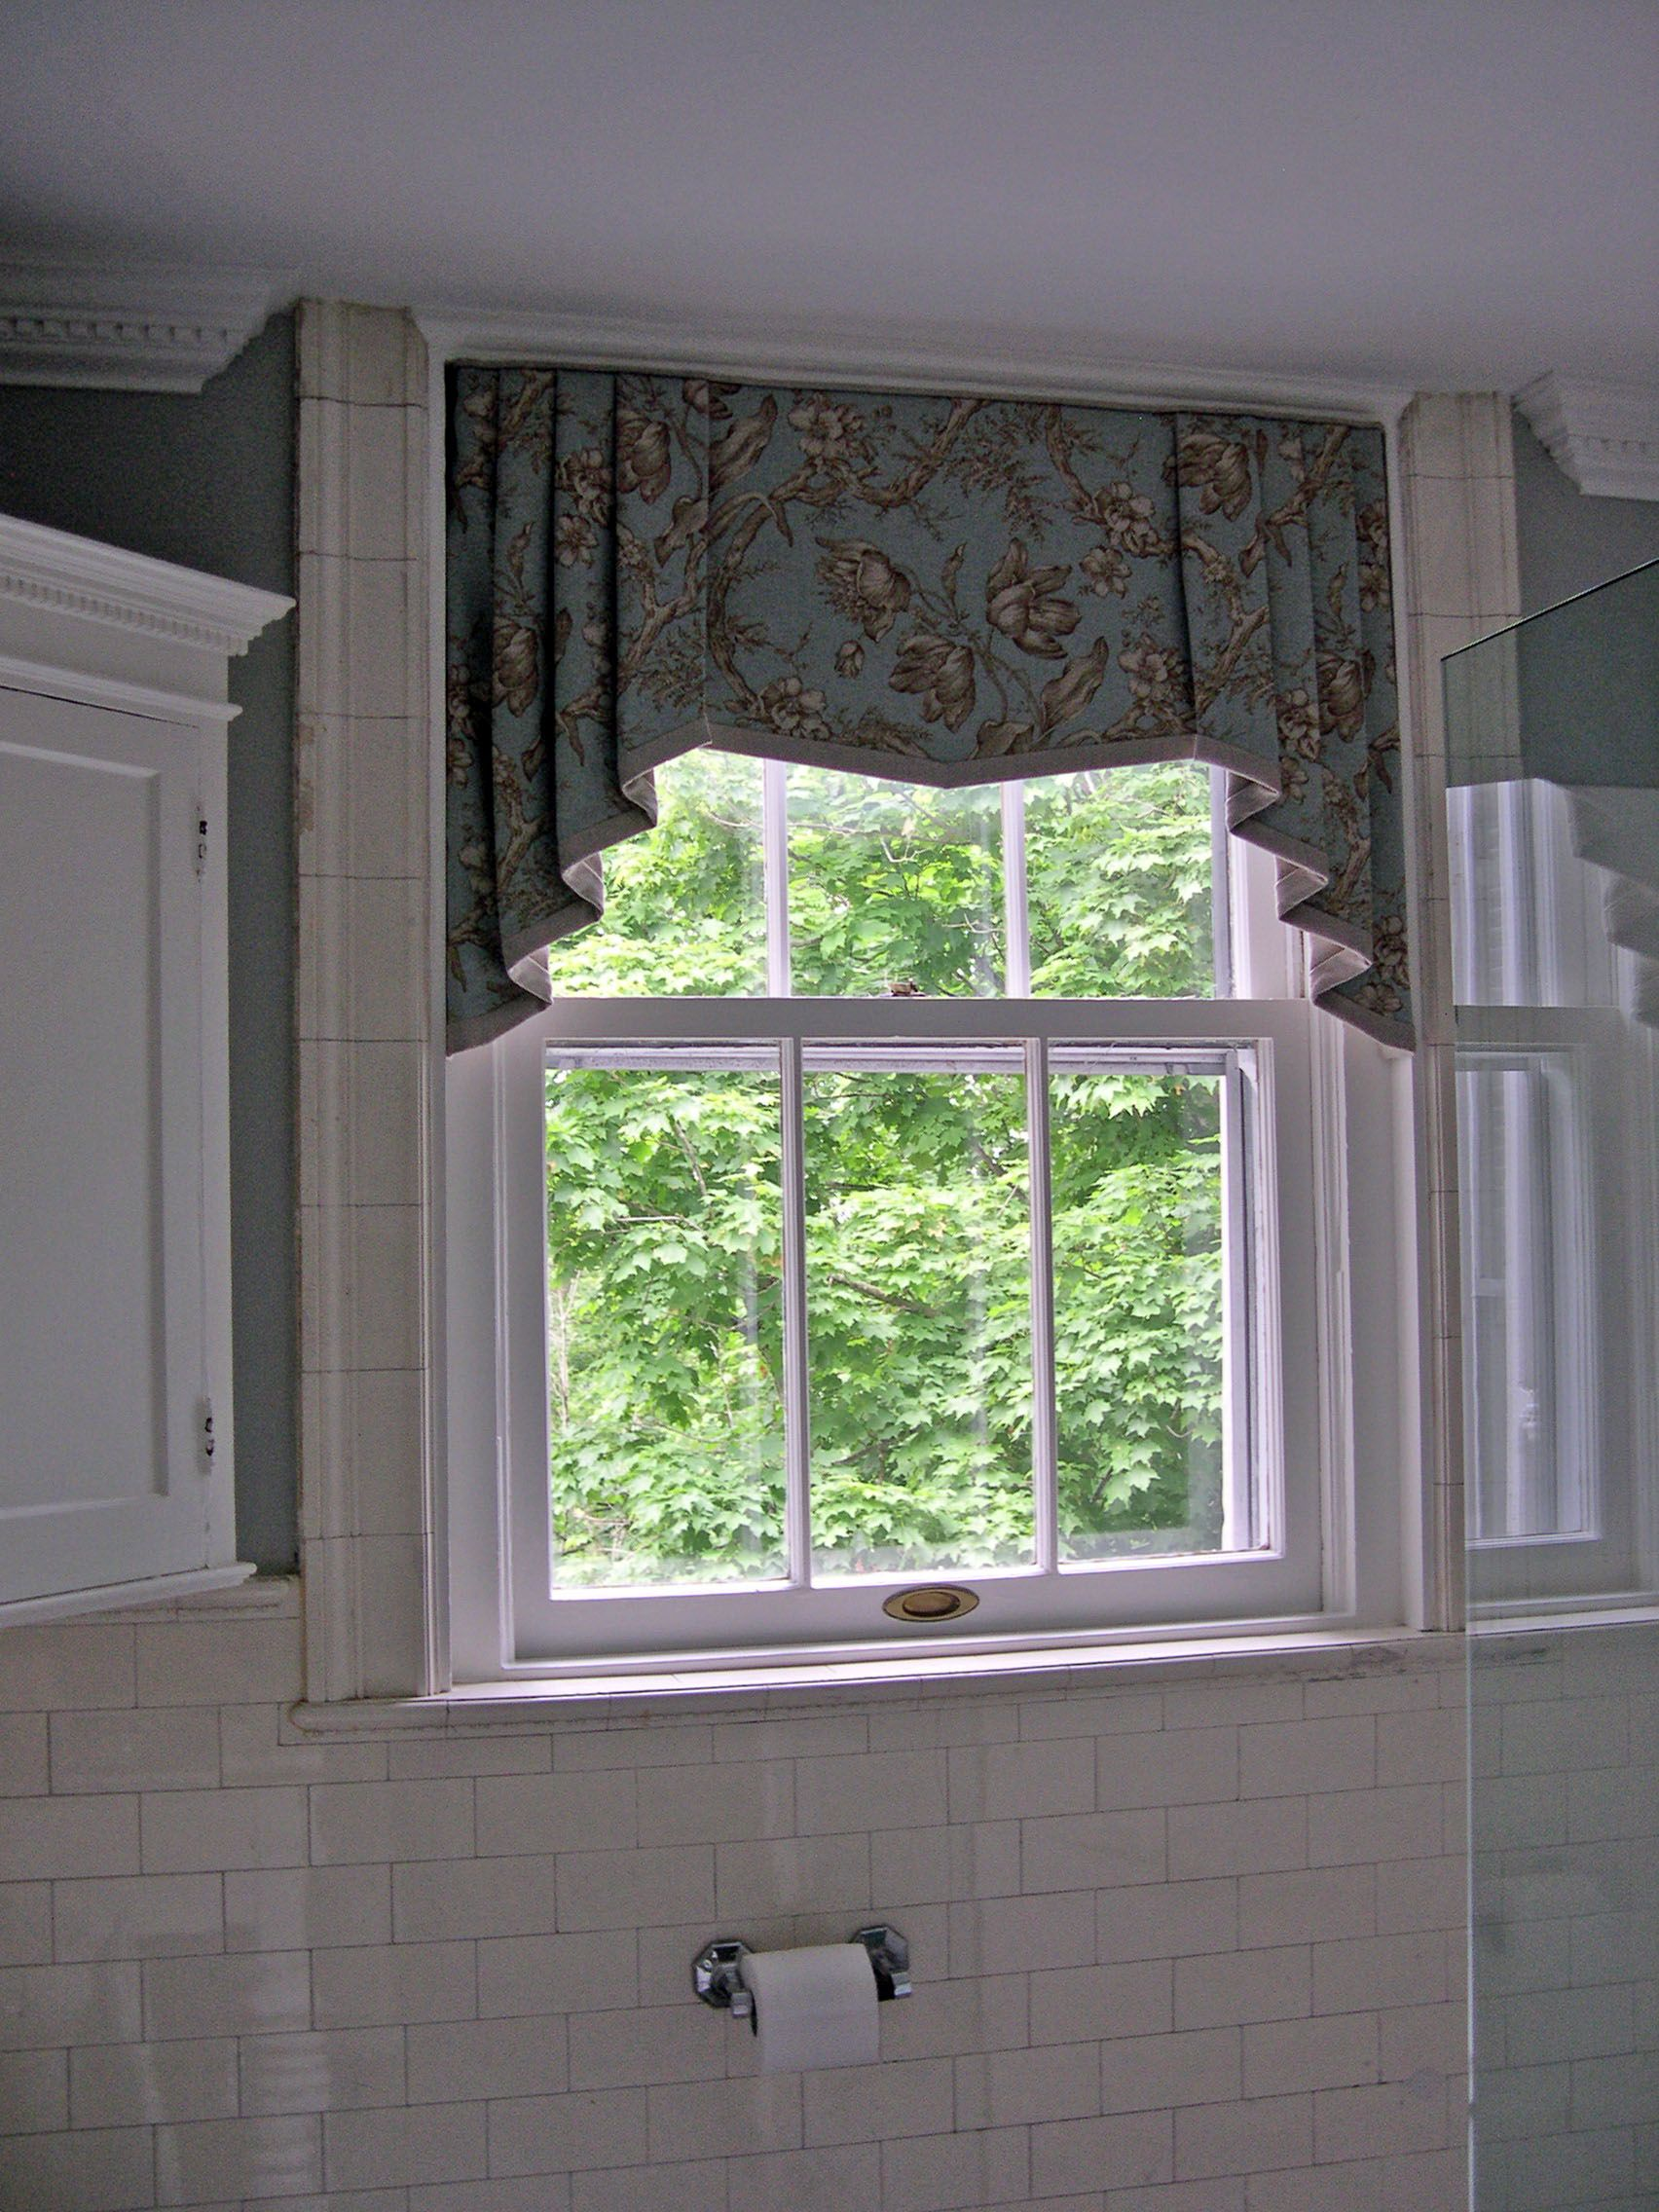 Shaped Valance With Banding And Contrast Lined Jabots Valance